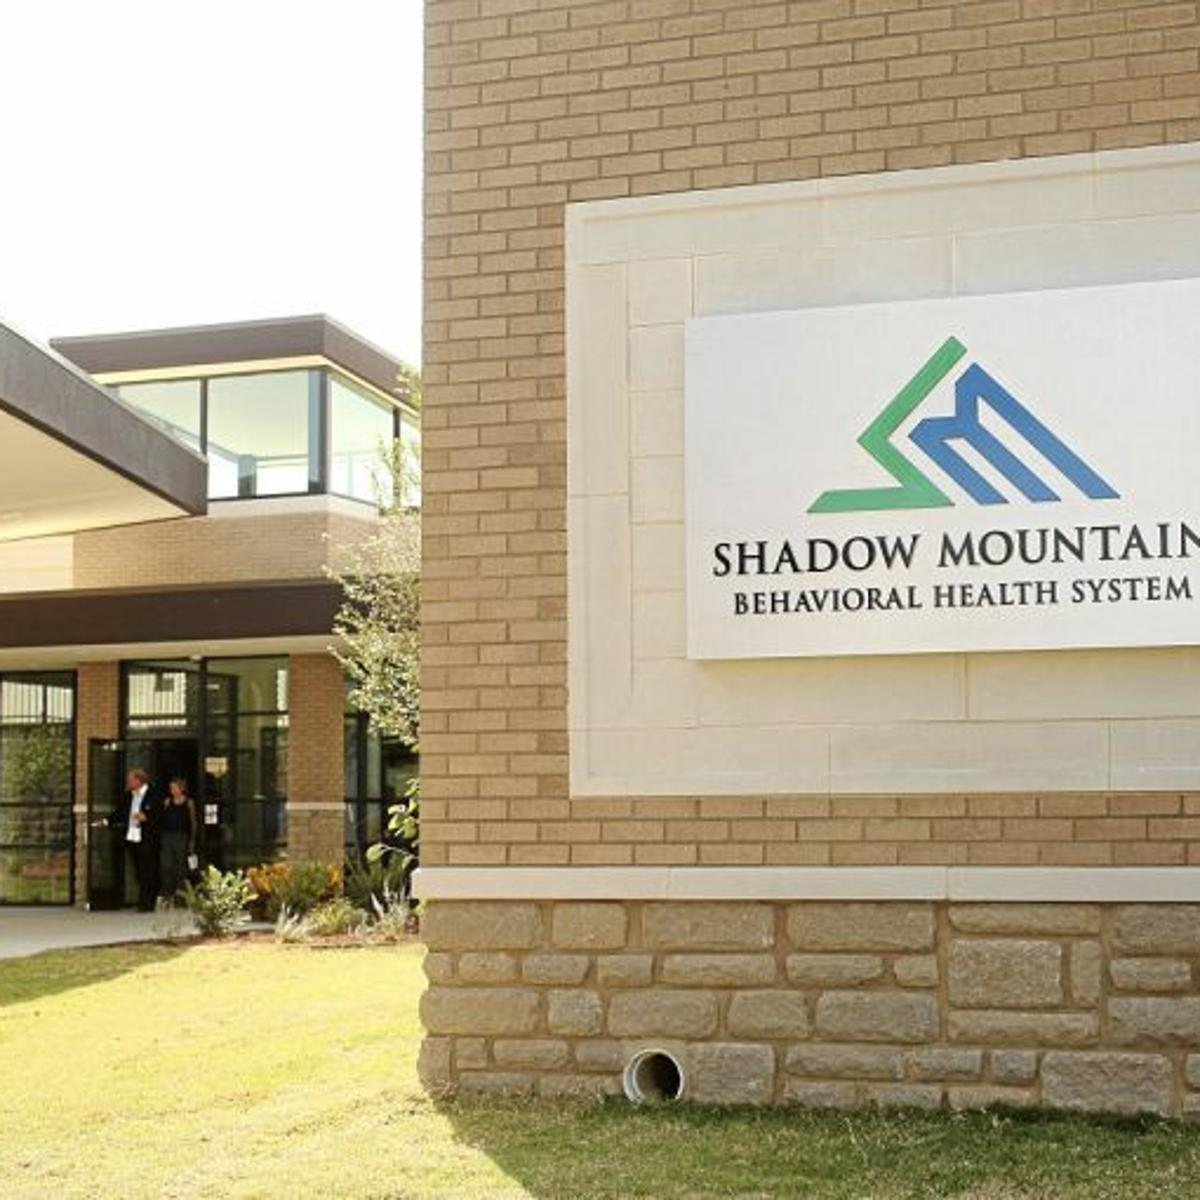 Tulsa Psychiatric Hospital Shadow Mountain Being Investigated After Abuse Neglect Claims Local News Tulsaworld Com